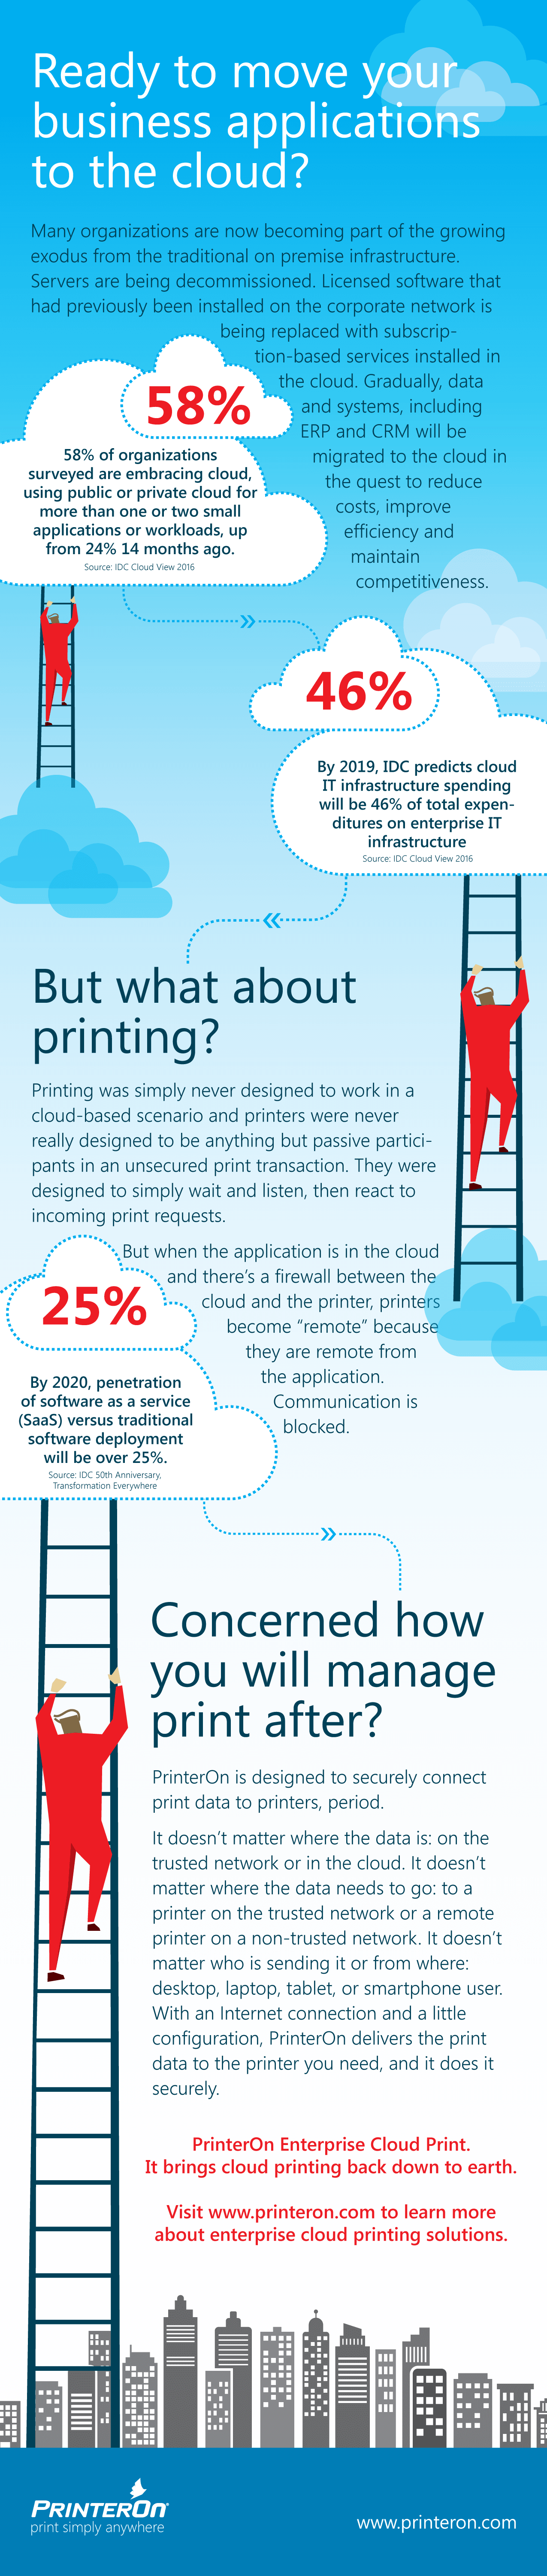 PrinterOn Enterprise Cloud Printing Solutions